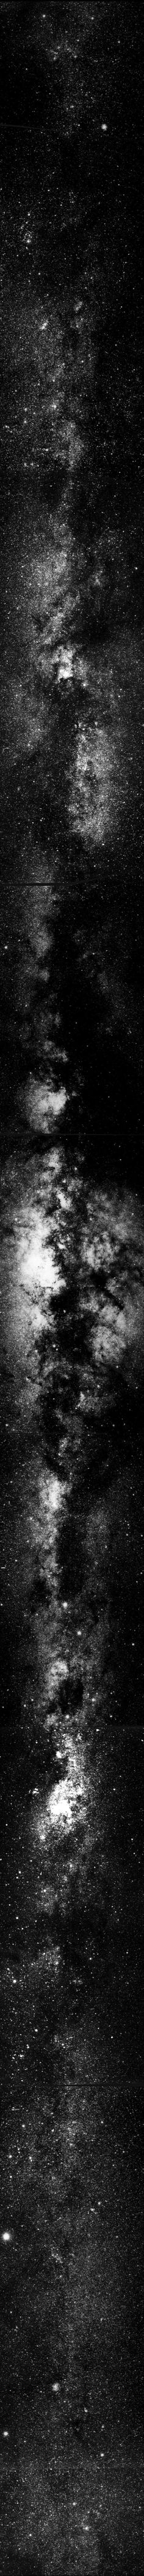 This is where we live, the Milky Way Galaxy. Holy shit, every one of those dots is a fucking sun. Sometimes I forget how absolutely incredible this world is. via the Two Micron All Sky Survey using, in part, the Very Large Telescope in the Atacama Desert in Chile.